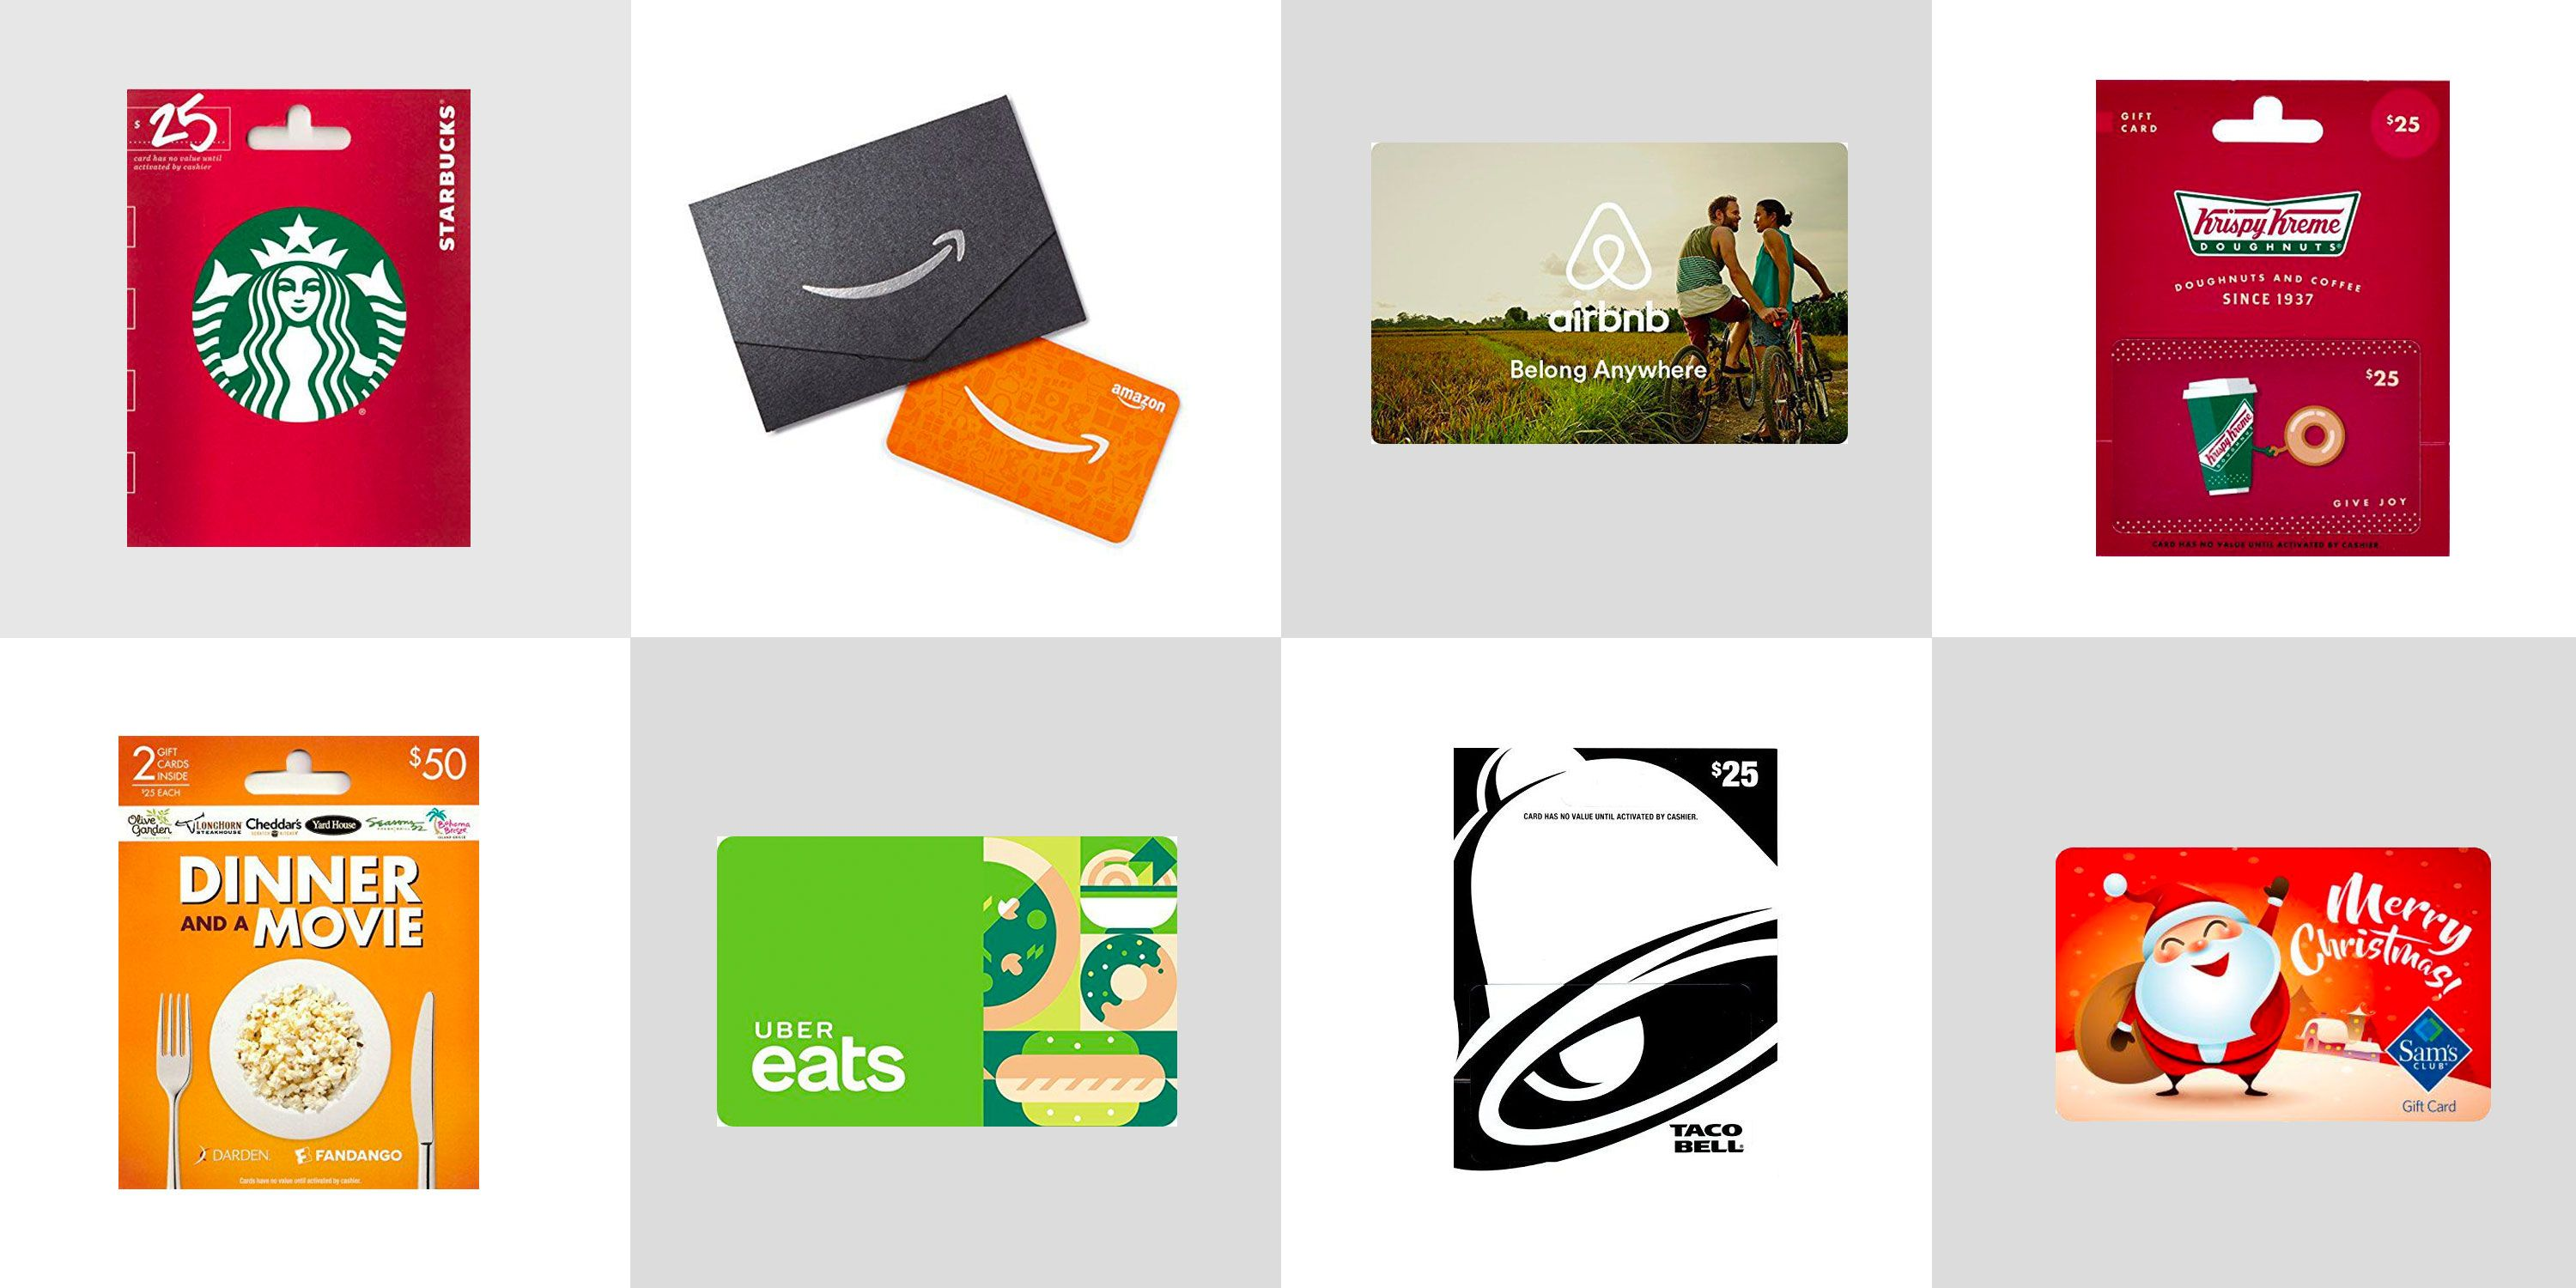 20 Best Gift Cards Easy Last Minute Gifts